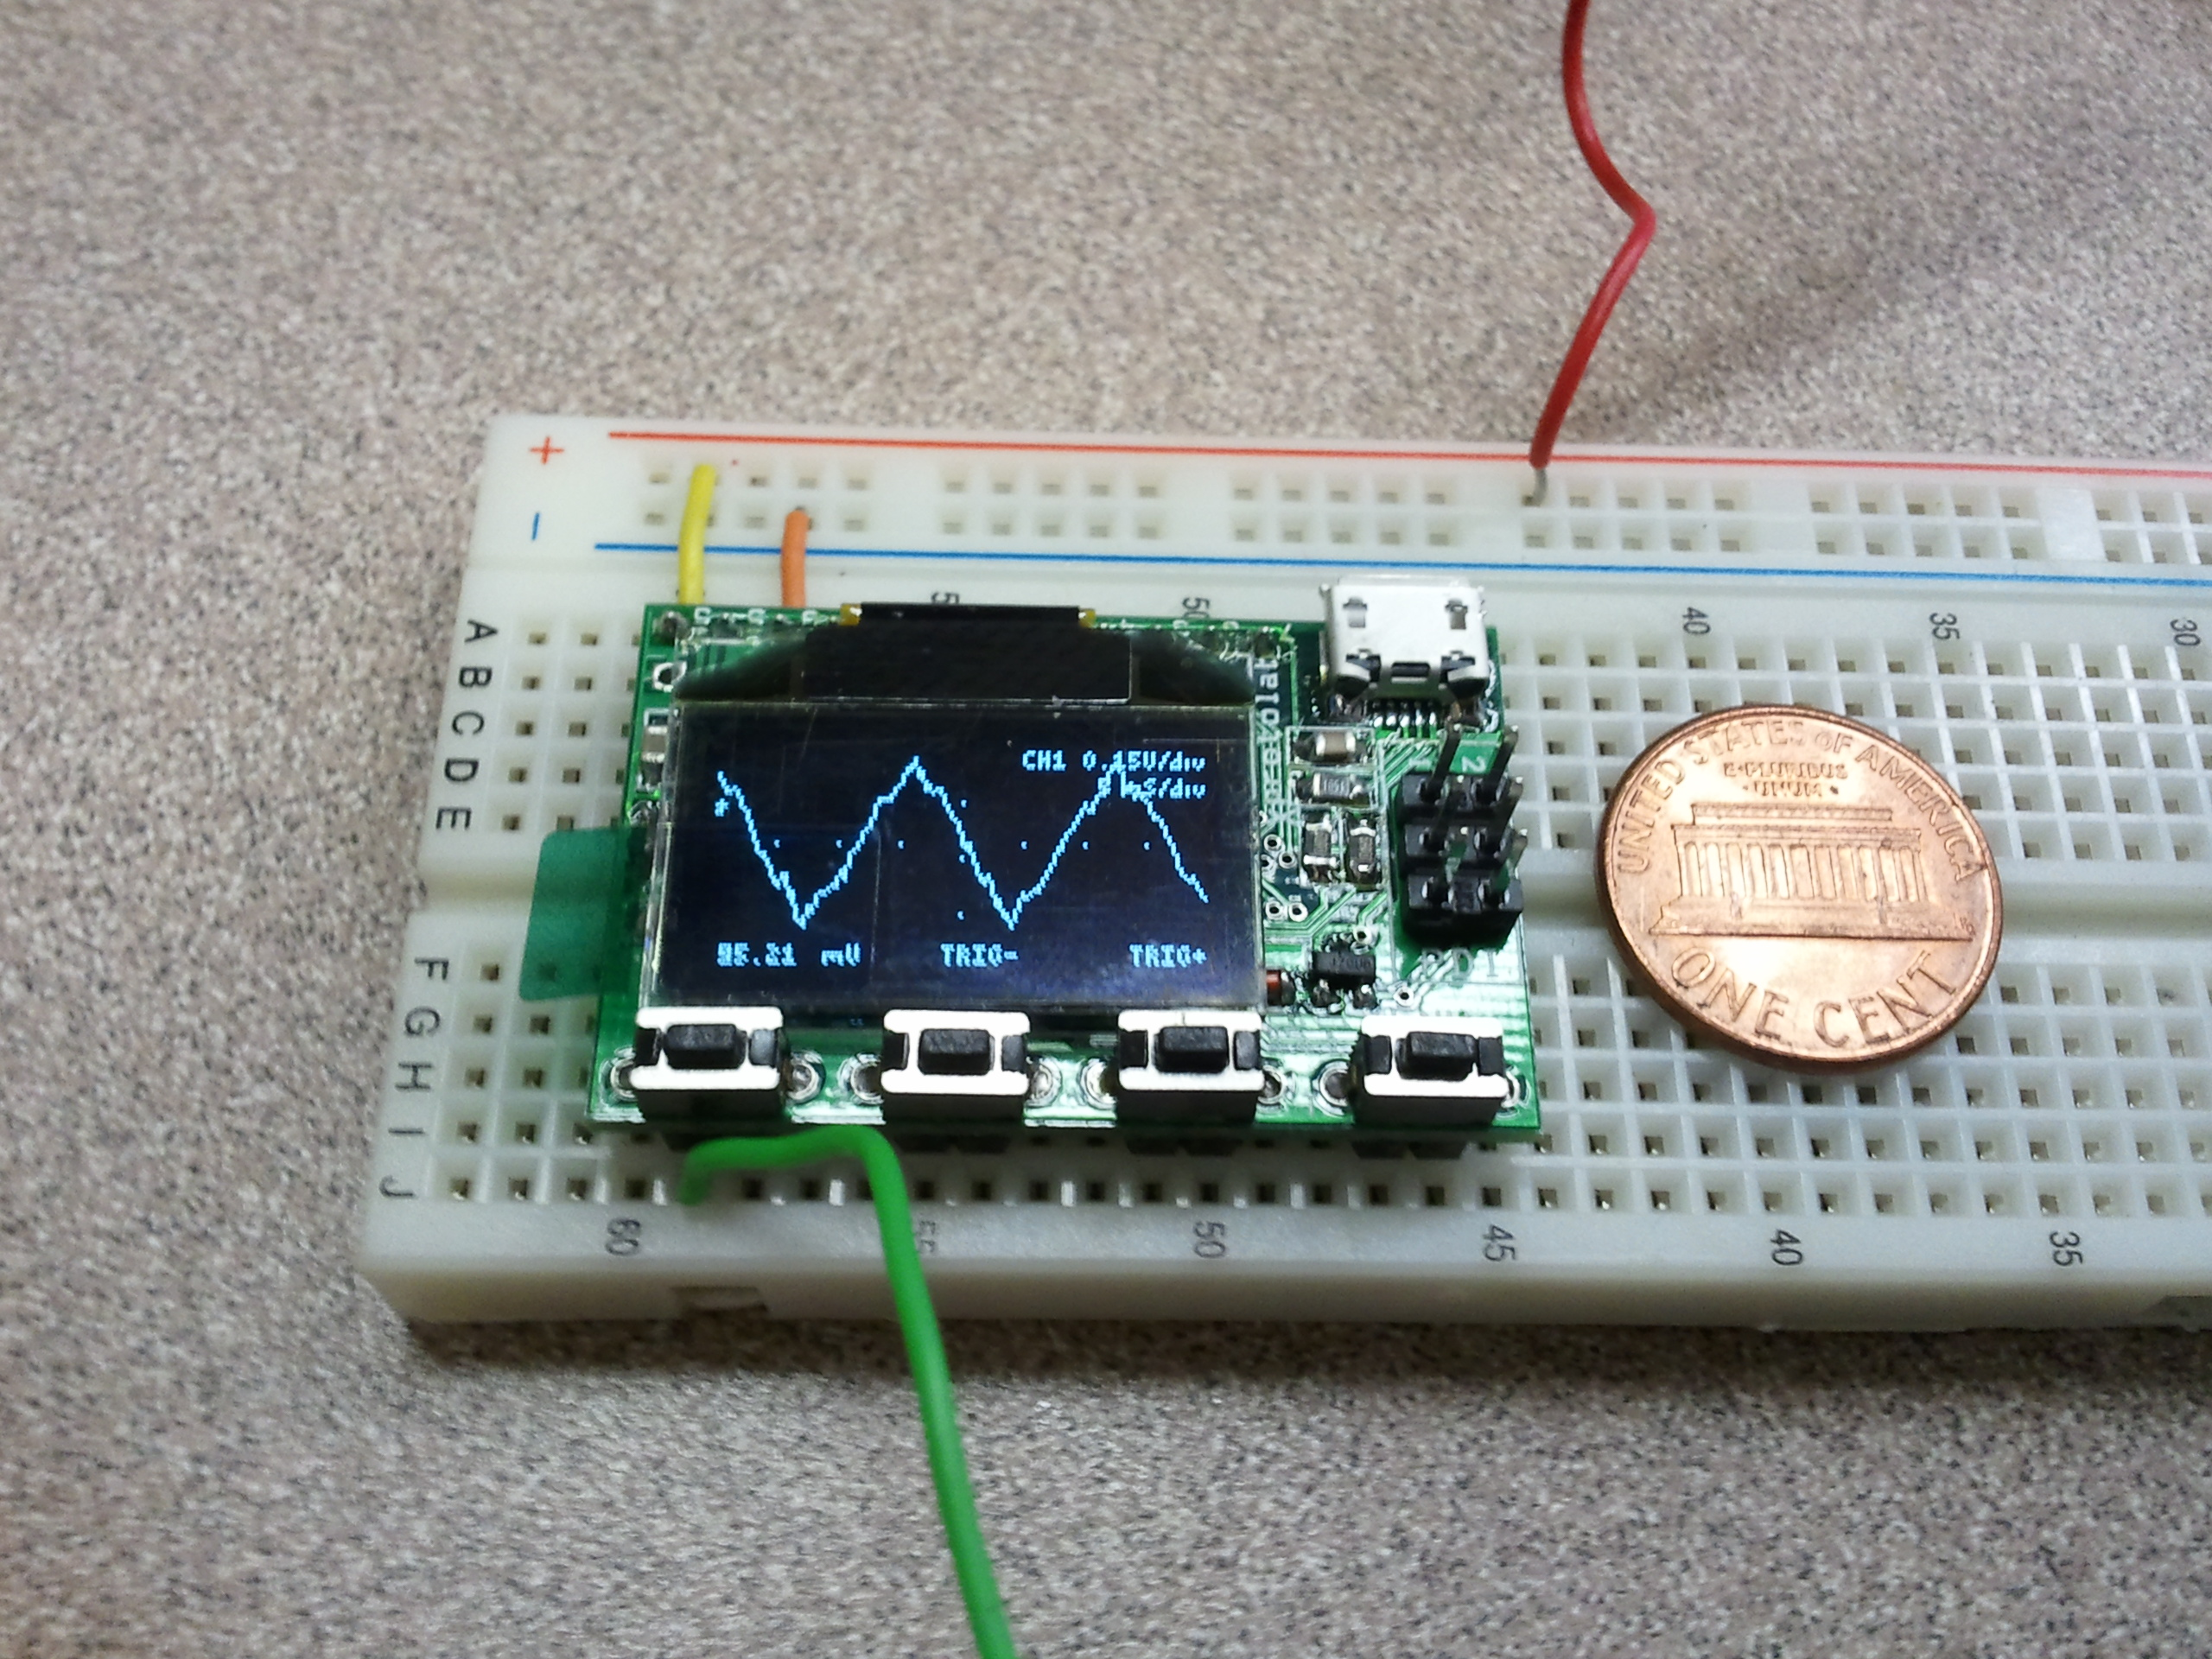 Electronic Diy Projects Pdf Do It Your Self Light2sound Ldr Synth Make Breadboard Oscilloscope The Paleotechnologist